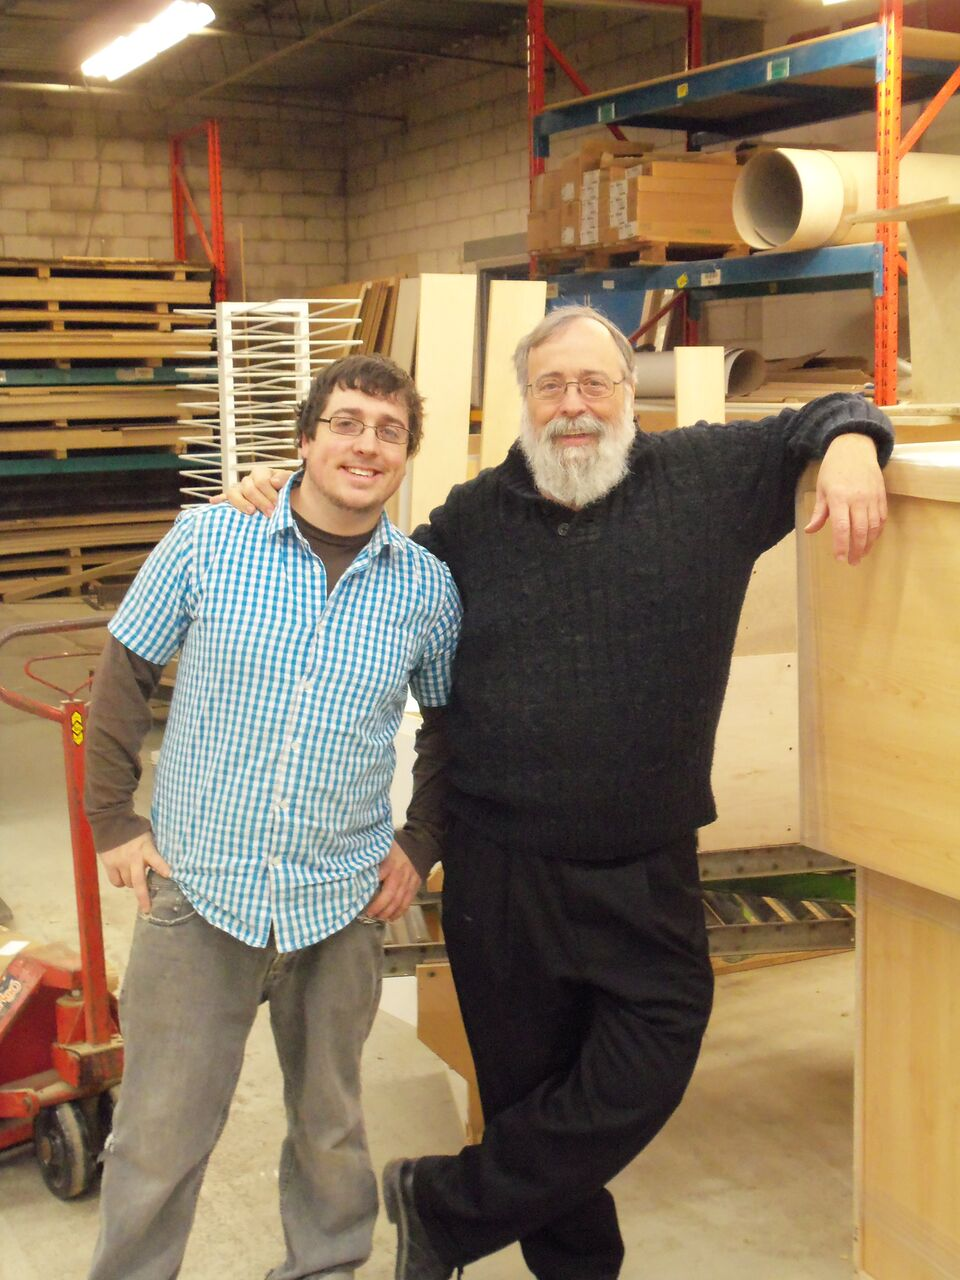 Family run business: Owner Bill Barker (at right) with his son Ian